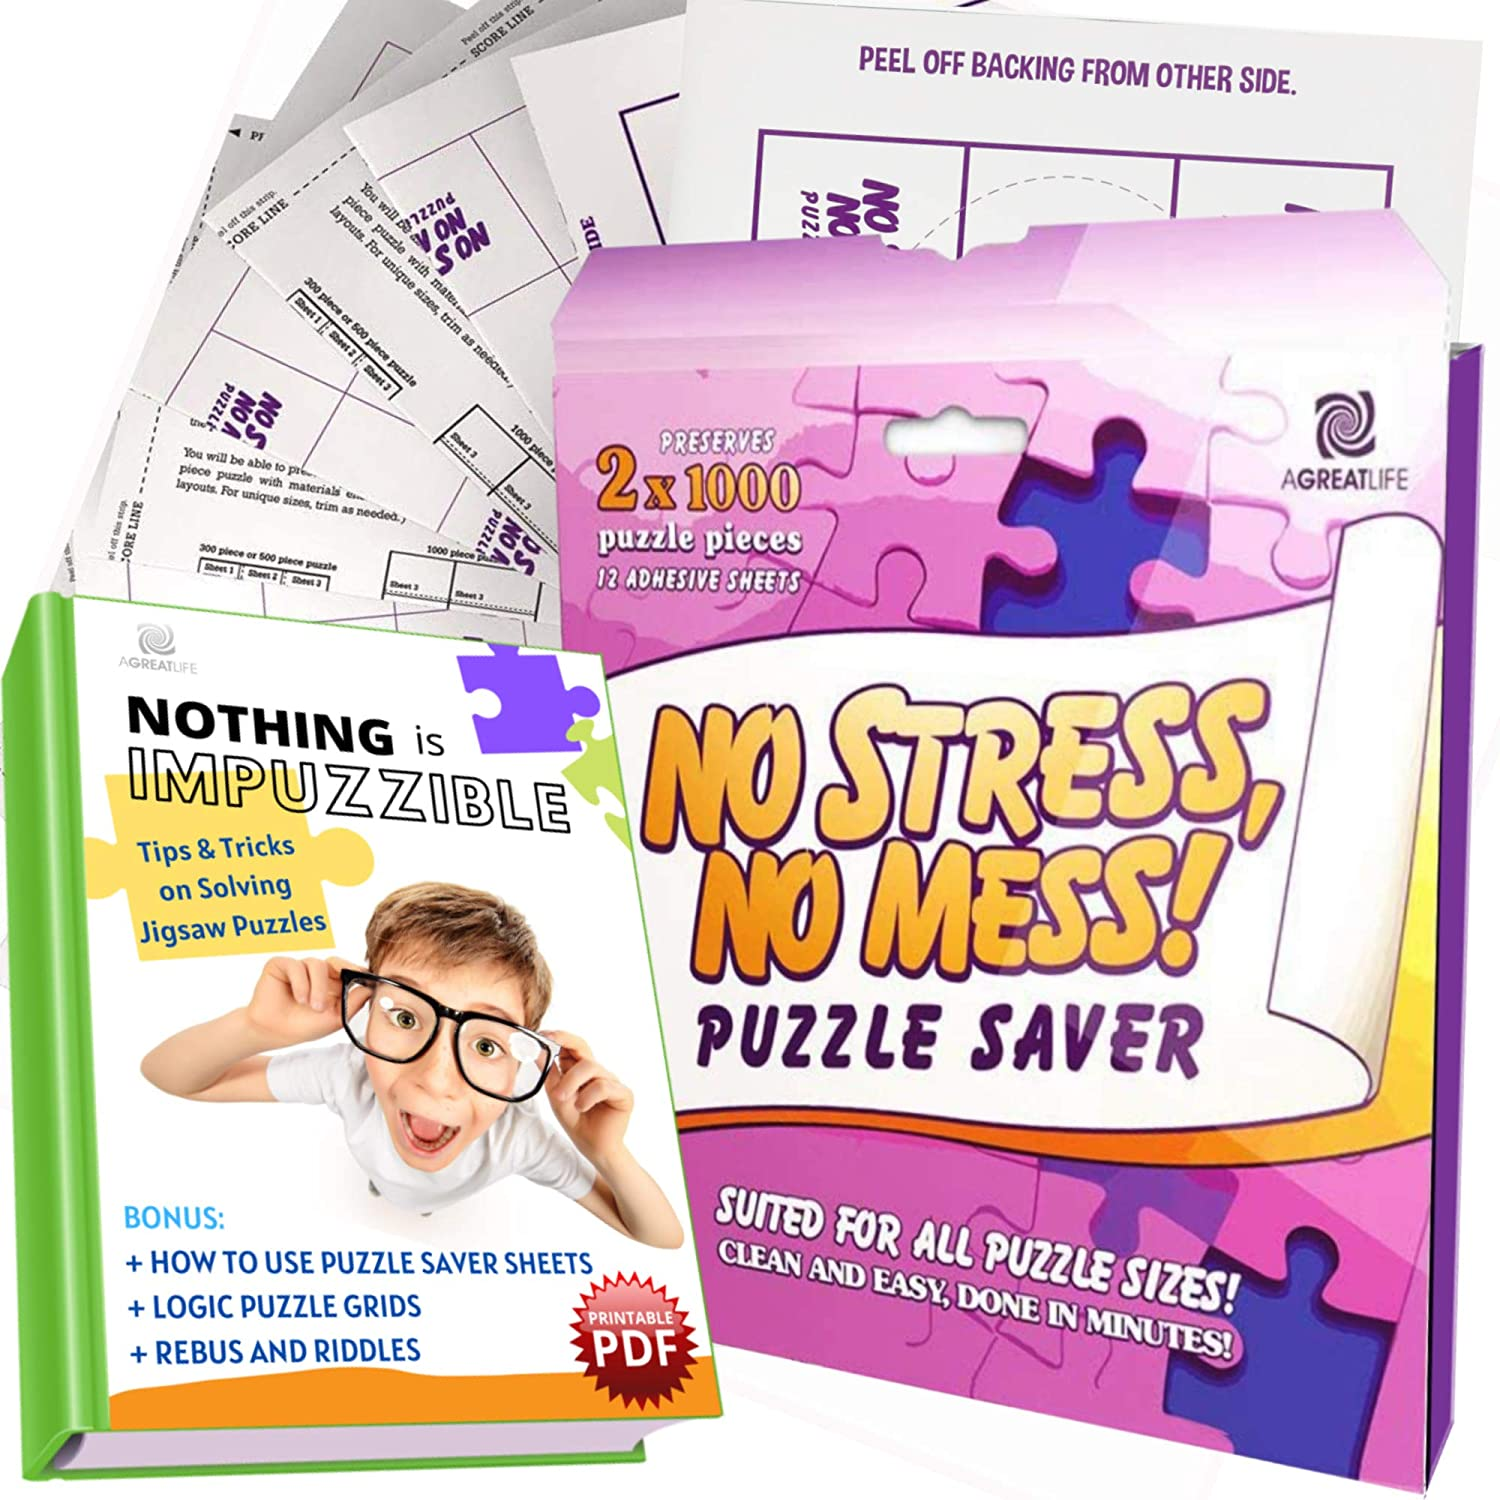 aGreatLife Puzzle Saver 14 sheets